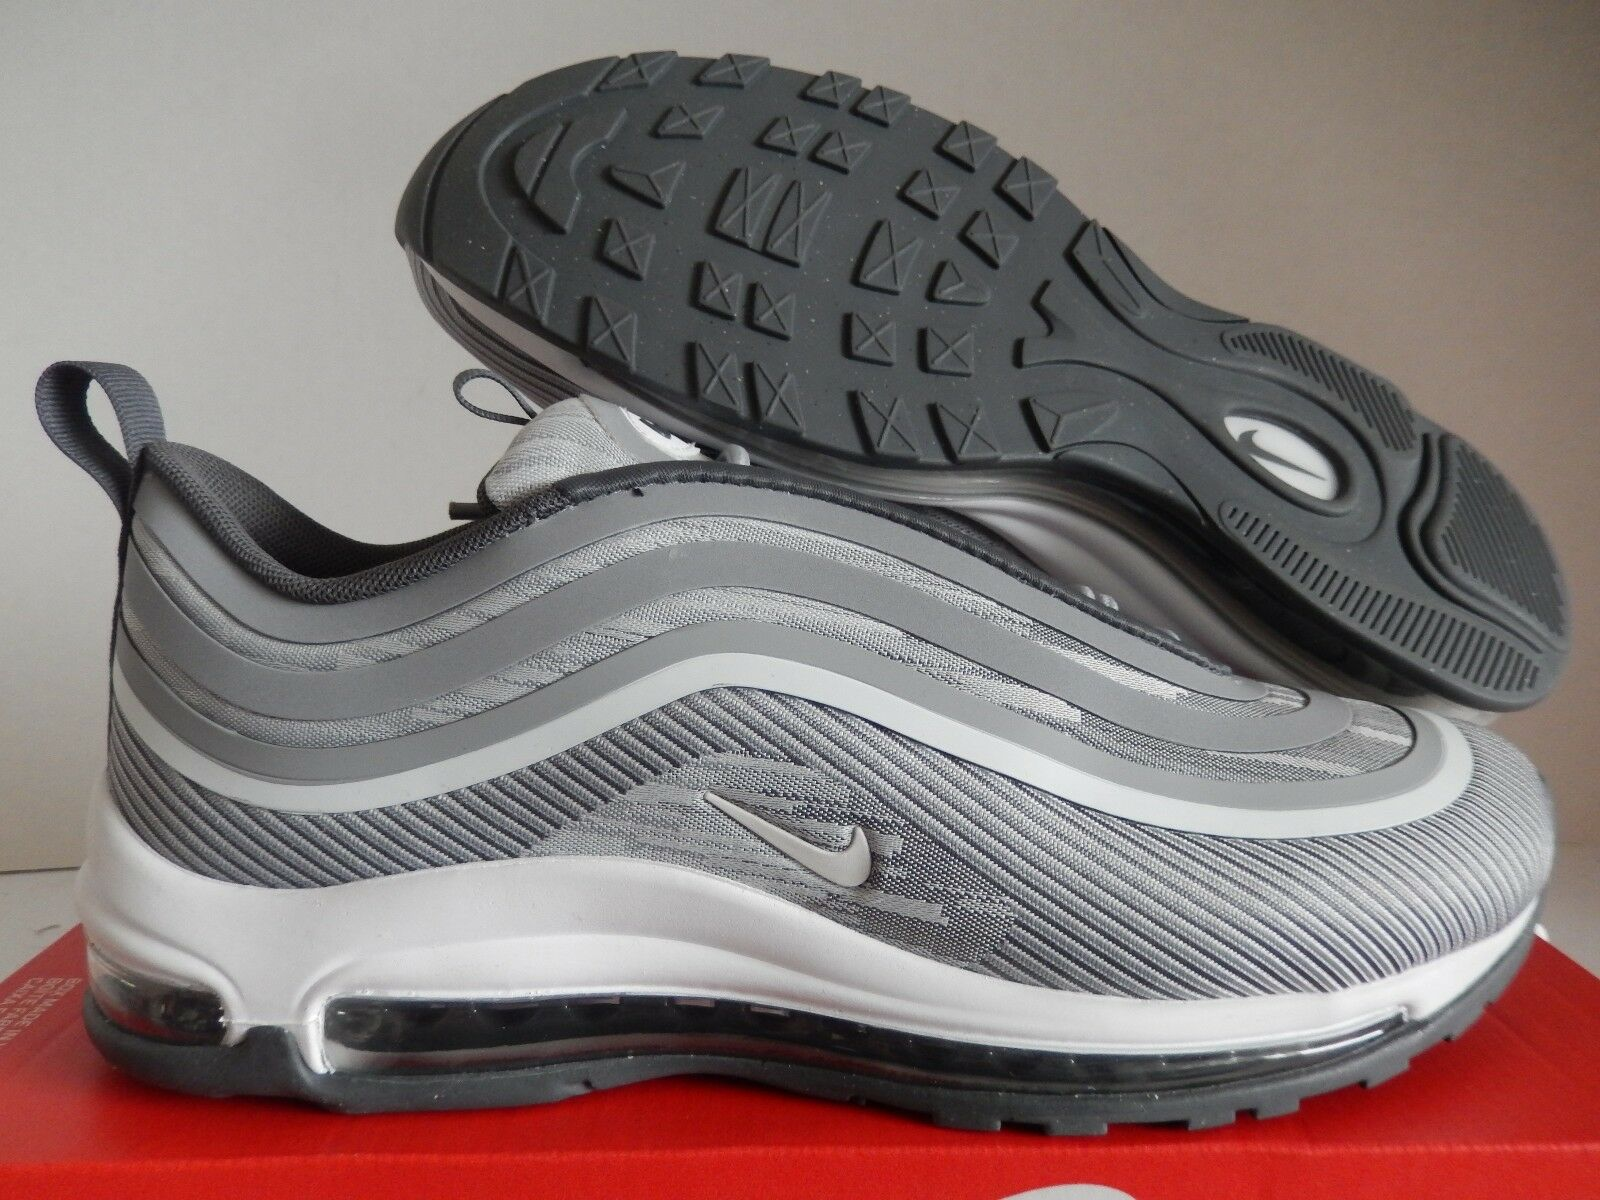 1cfe5f6f7b Nike Air Max 97 UL 17 Men's Running Shoes 918356-007 Select Size 8 ...